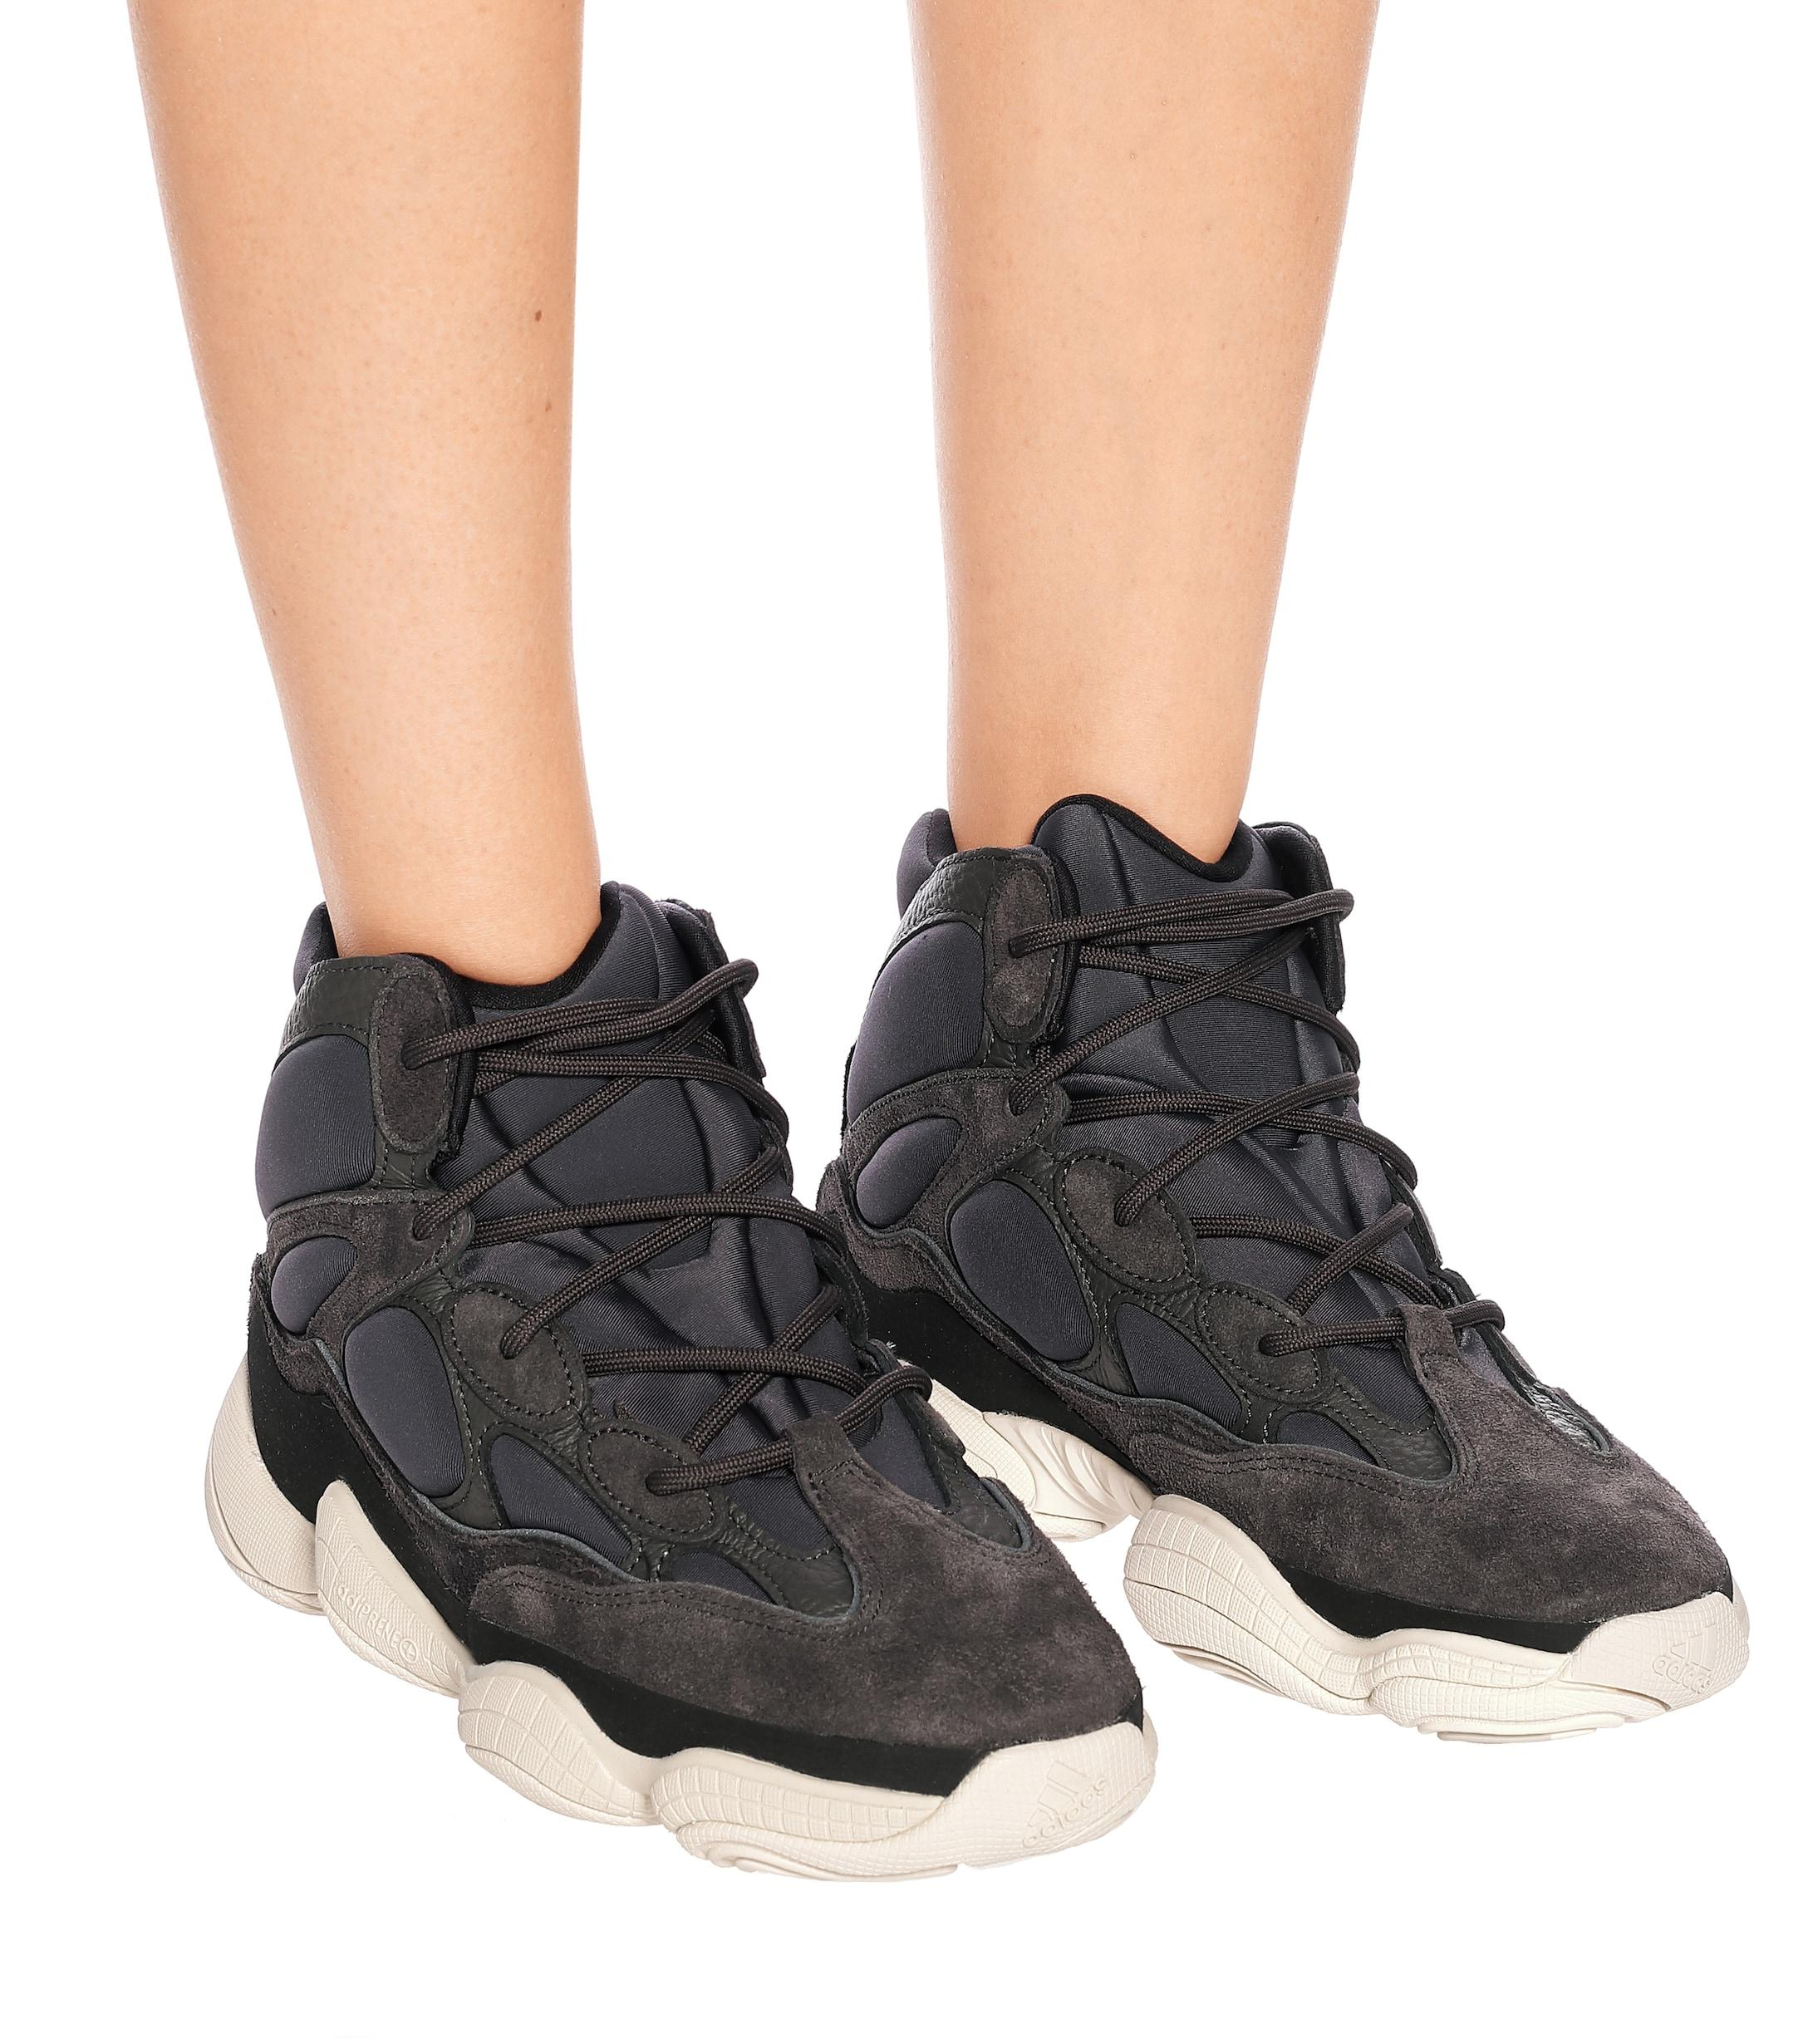 Zapatillas YEEZY 500 High adidas Originals de Caucho